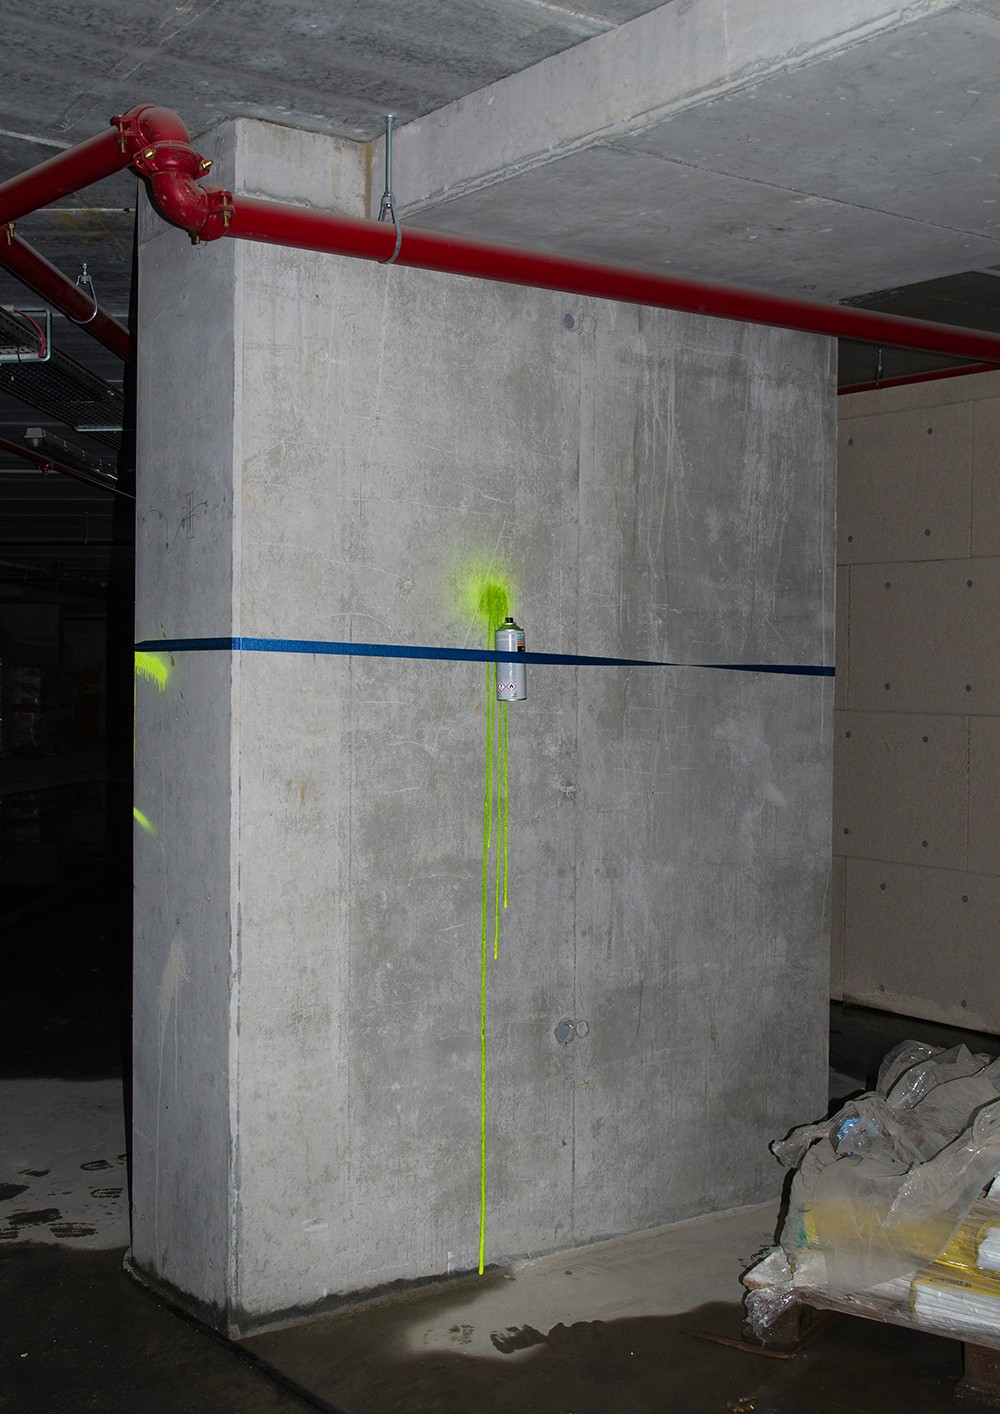 ', Intervention in underground public parking space, commissioned for The Archive Hotel, Documented action, digital photograph (Callewaert Vanlangendonck Gallery)